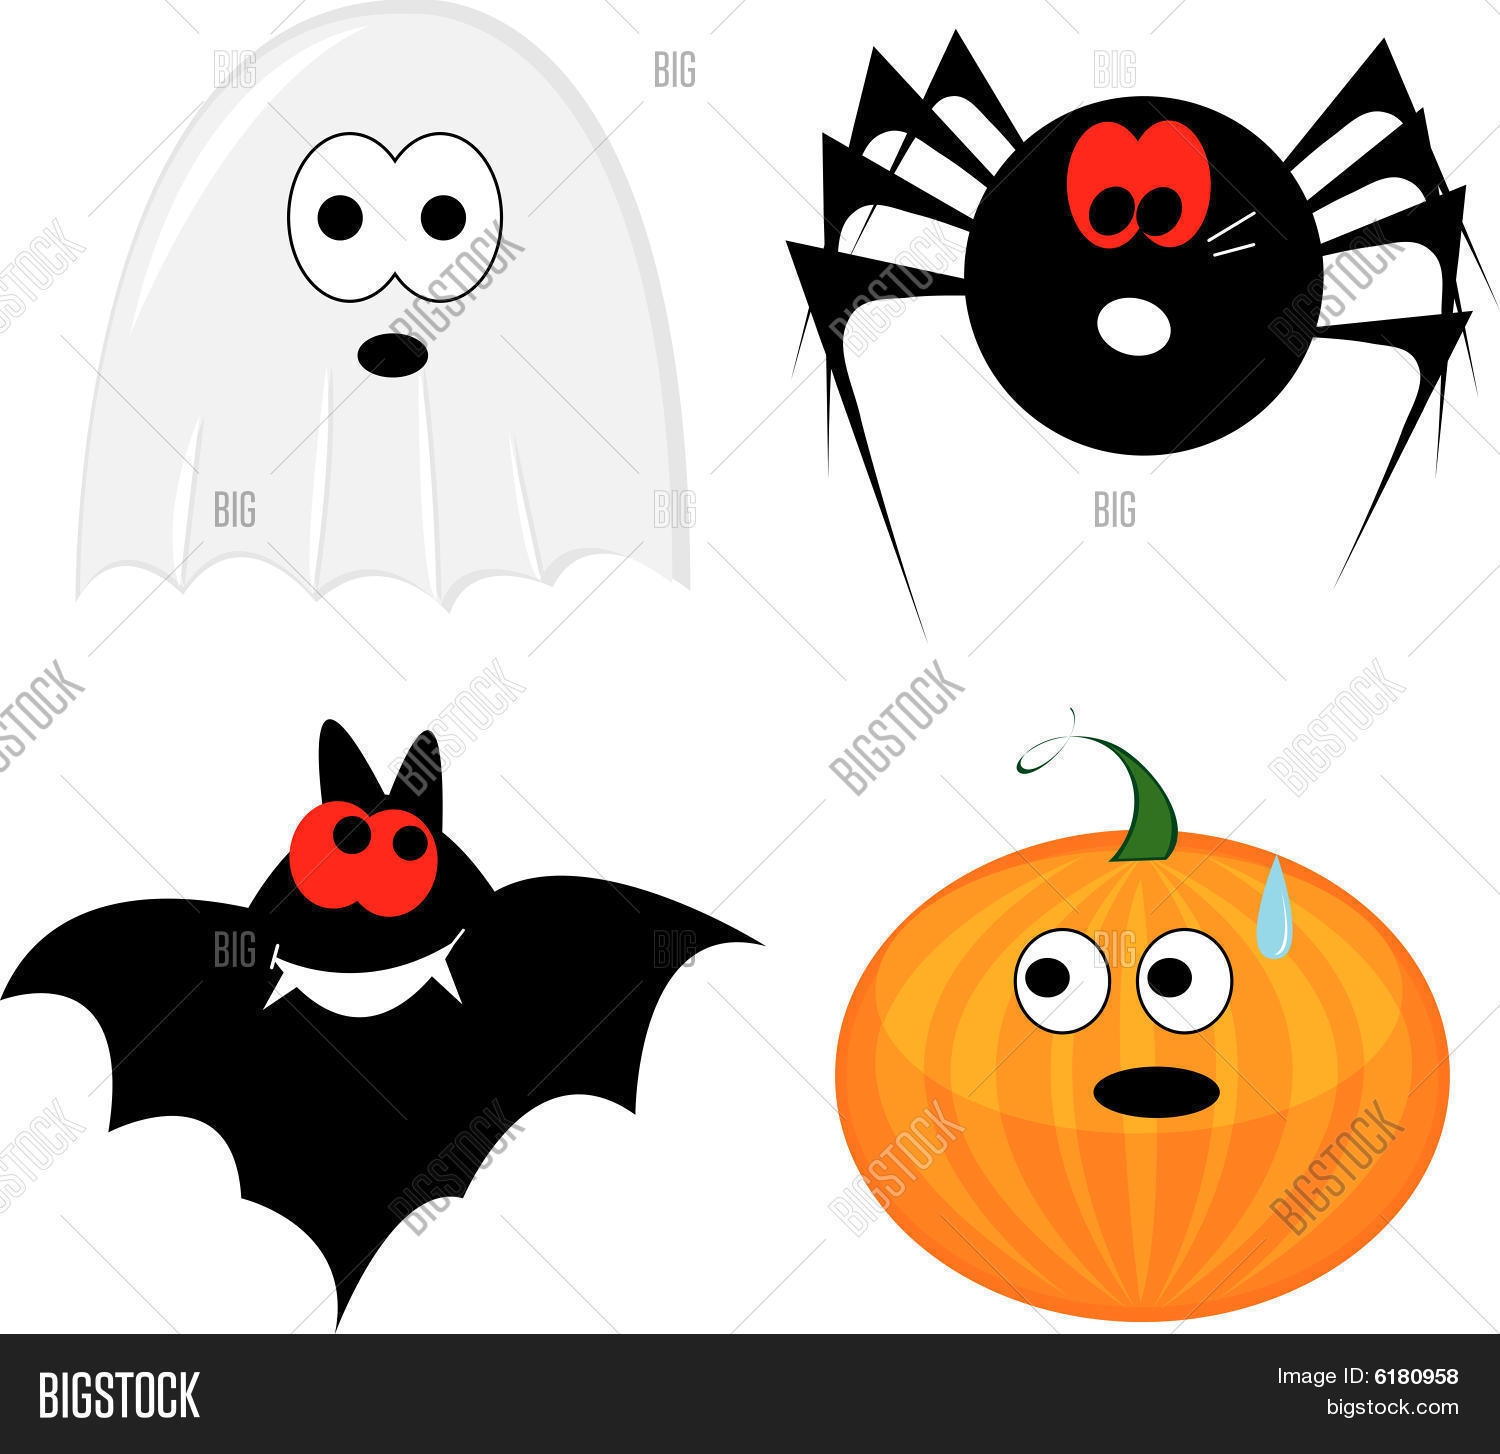 Imagenes de fantasmas animados best cartoon uggly - Imagenes de halloween ...